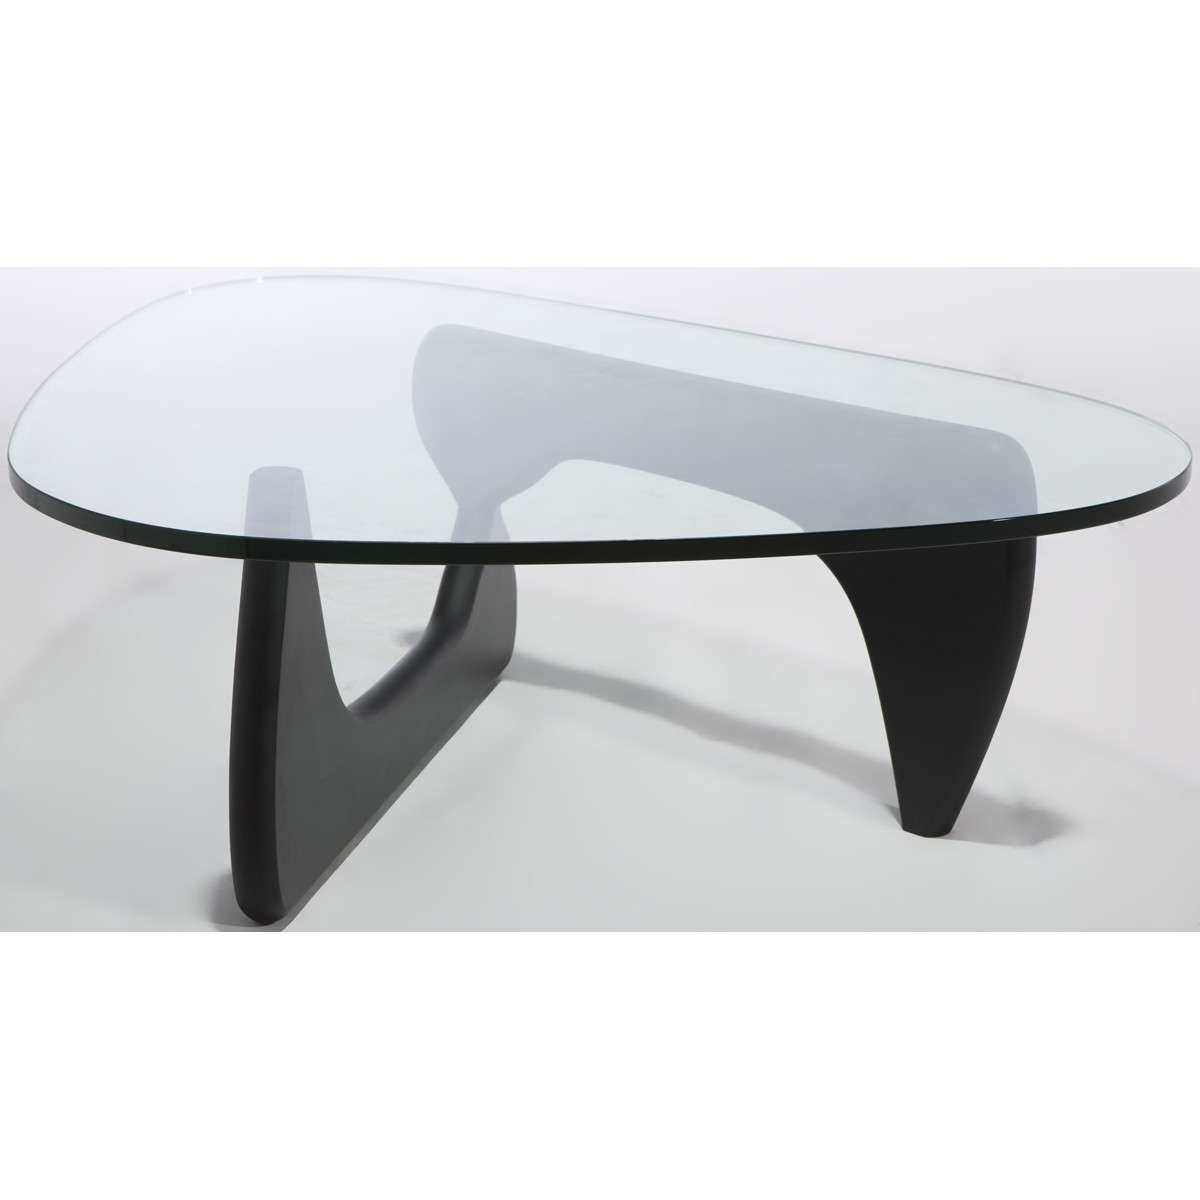 Odd Shaped Coffee Tables • Coffee Table Design In Popular Odd Shaped Coffee Tables (View 17 of 20)